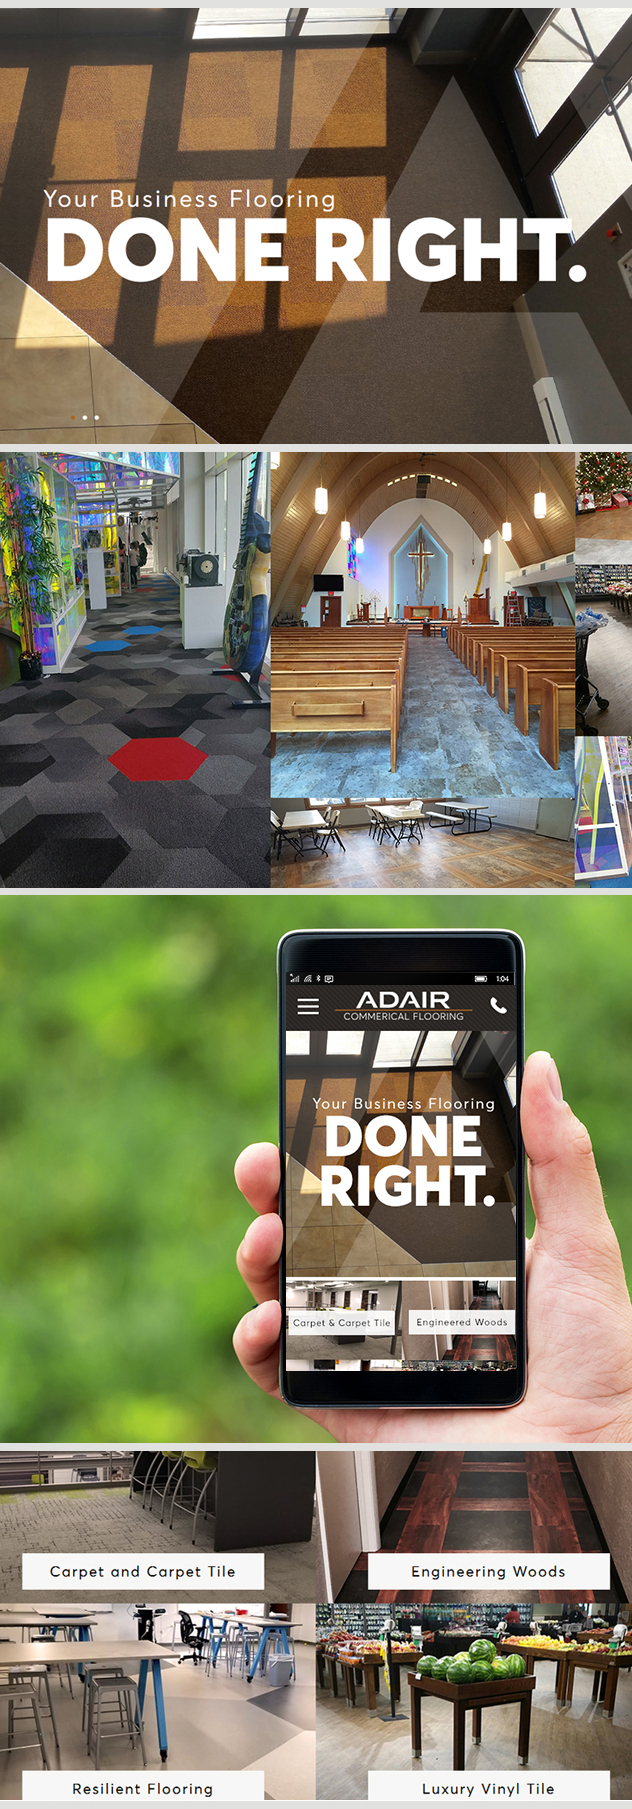 Milwaukee web marketing for Adair Commercial Flooring